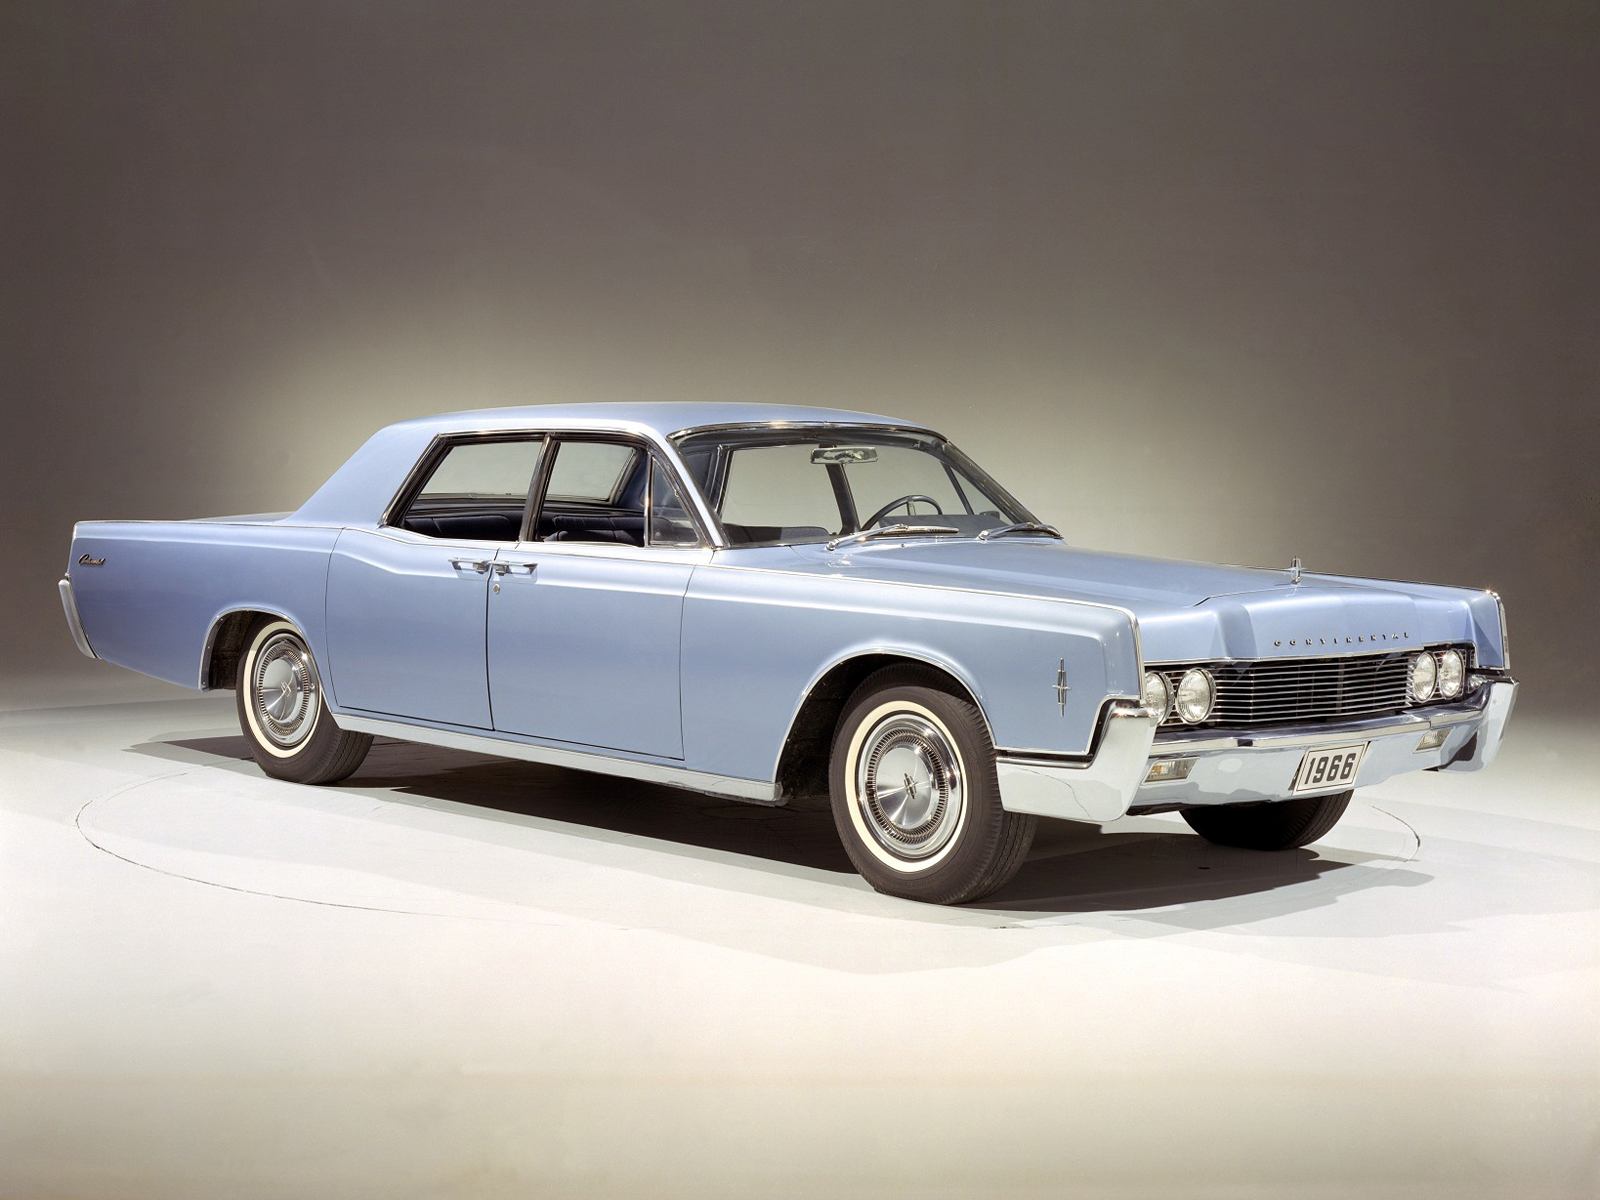 Watch in addition 1966 Lincoln Continental Sedan classic luxury in addition 1965 Lincoln Continental photo as well Ford Thunderbird I Am Current Troubleshooting Power Windows Beauteous Electric Life Window Wiring Diagram On Massey Ferguson 35 also 1701755. on 67 lincoln continental